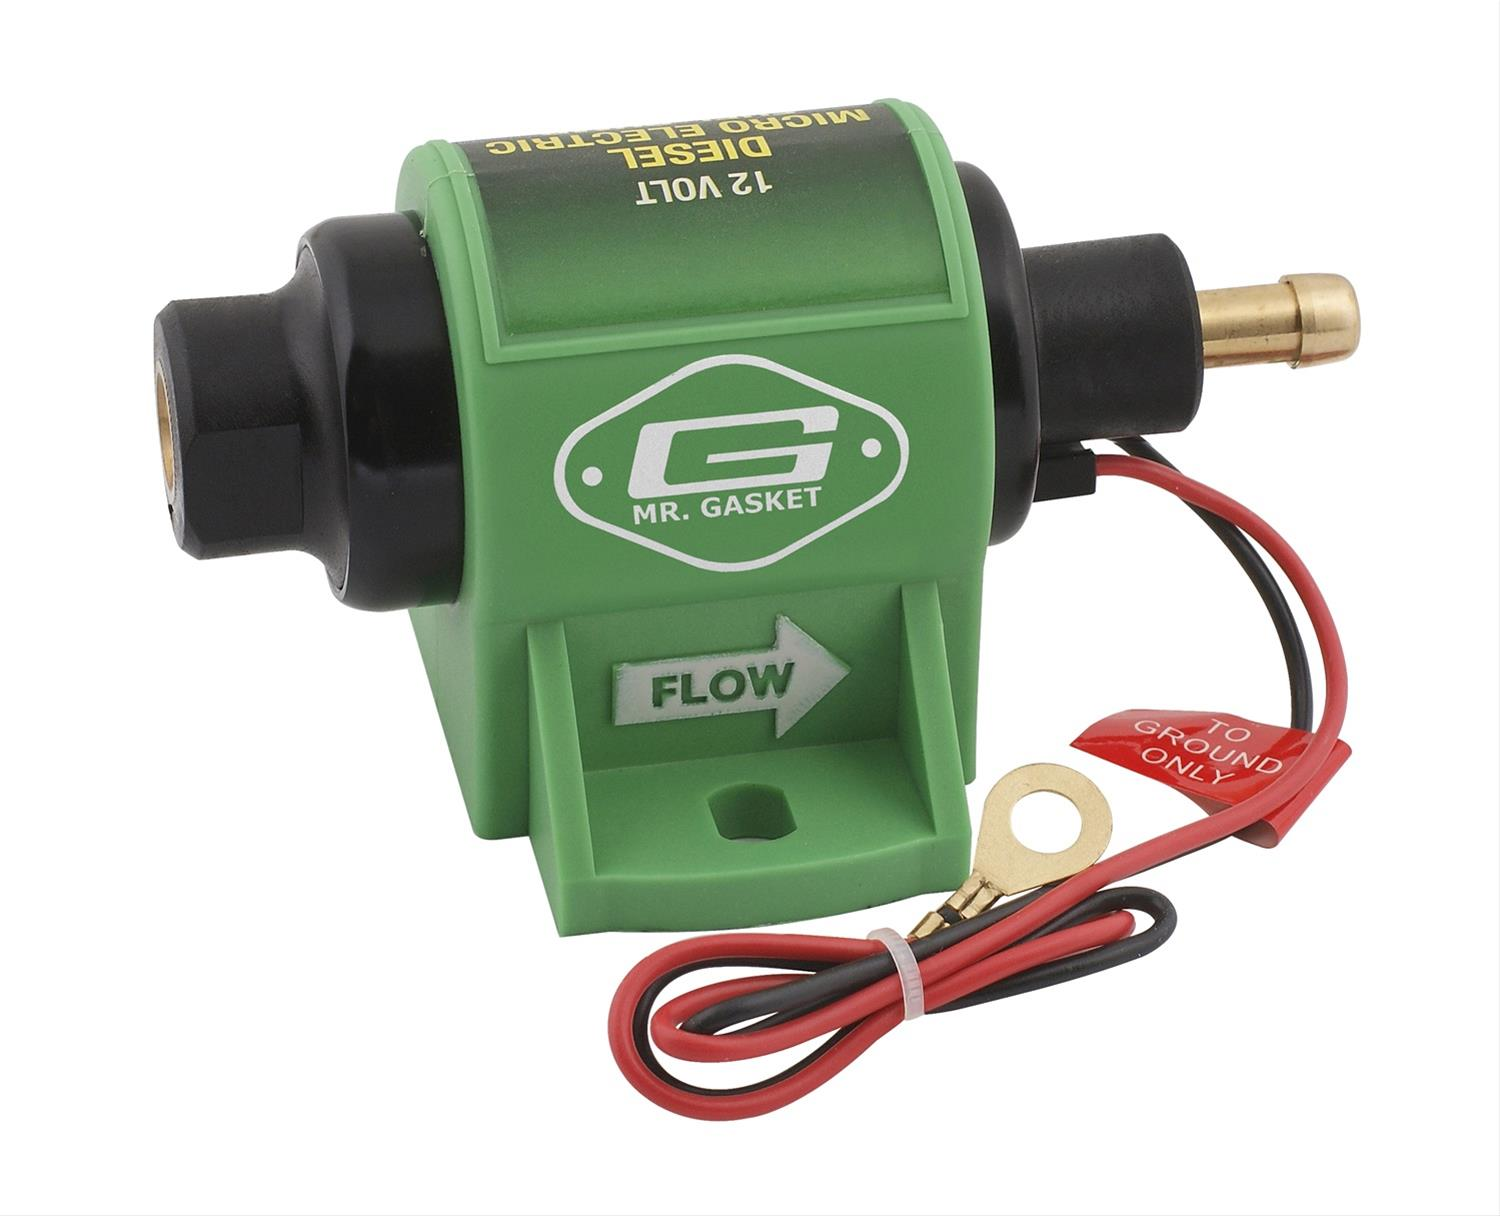 Mr Gasket Micro Electronic Fuel Pumps 12d Free Shipping On Orders. Mr Gasket Micro Electronic Fuel Pumps 12d Free Shipping On Orders Over 99 At Summit Racing. Wiring. International Prostar Wiring Diagram For Fuel Transfer Pump At Scoala.co